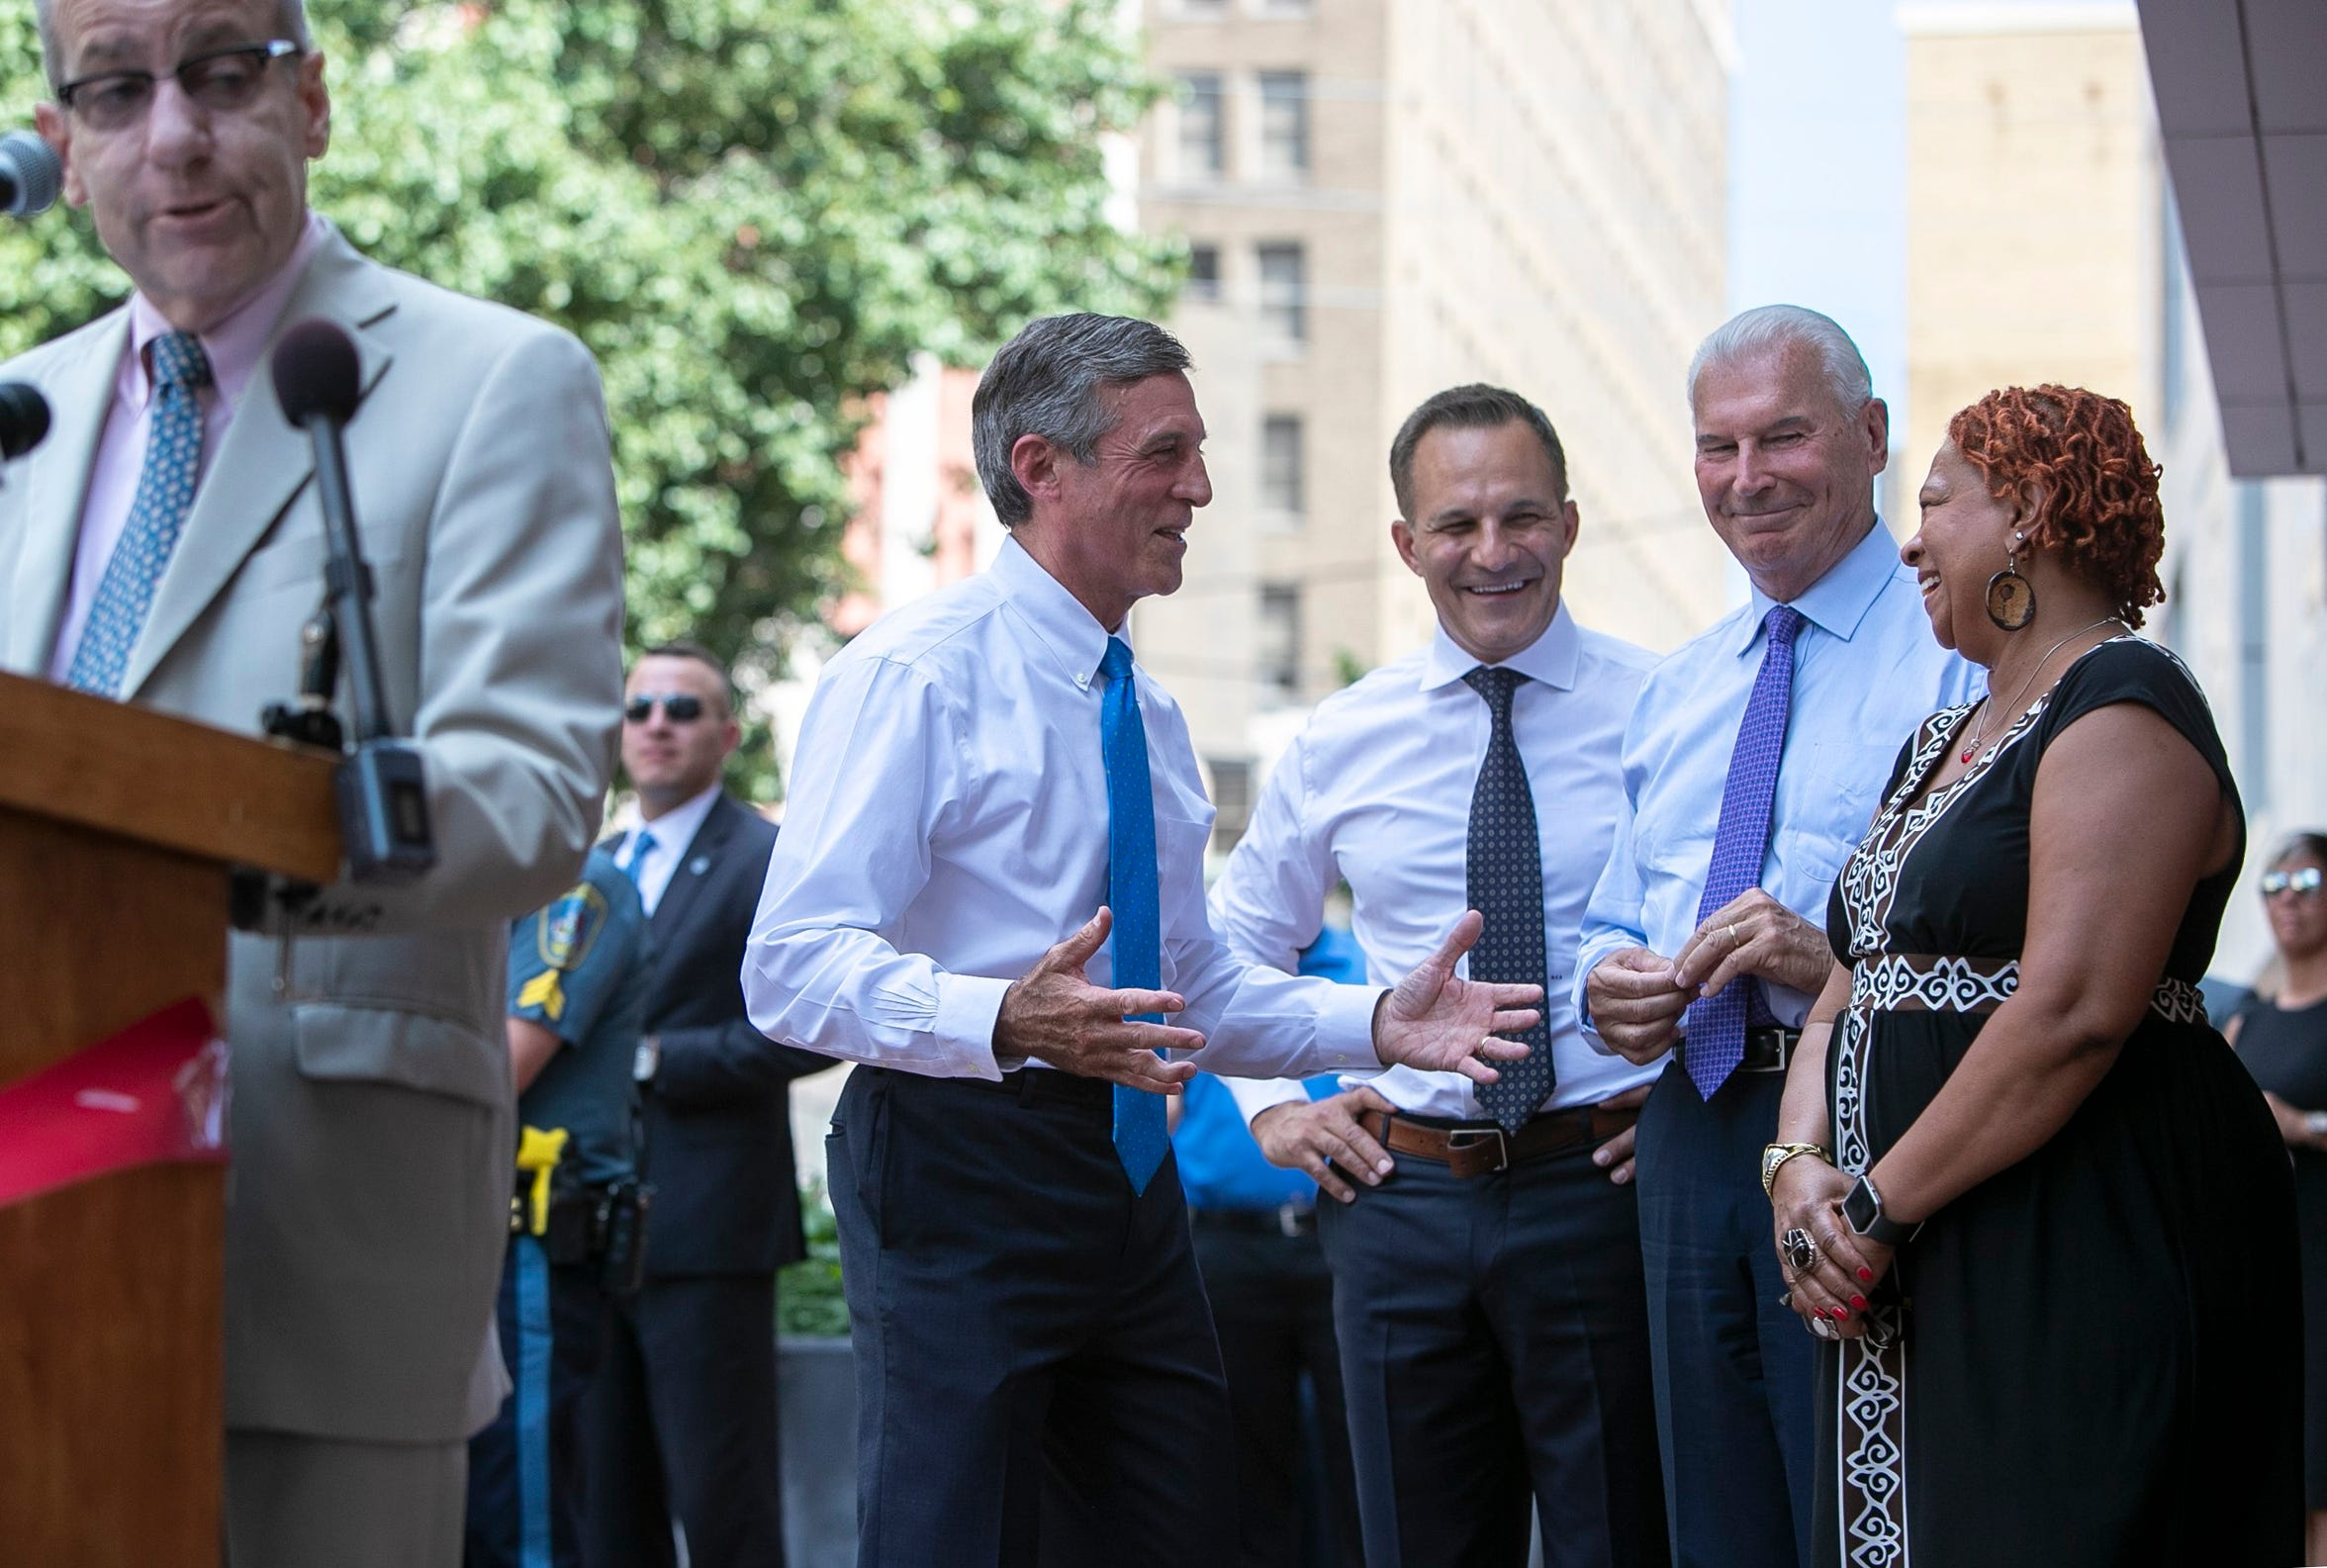 Gov. John Carney, Rob Buccini, Mayor Mike Purzycki, and Council President Hanifa Shabazz mingle during the ribbon-cutting ceremony for the Residences at Mid-town Park.